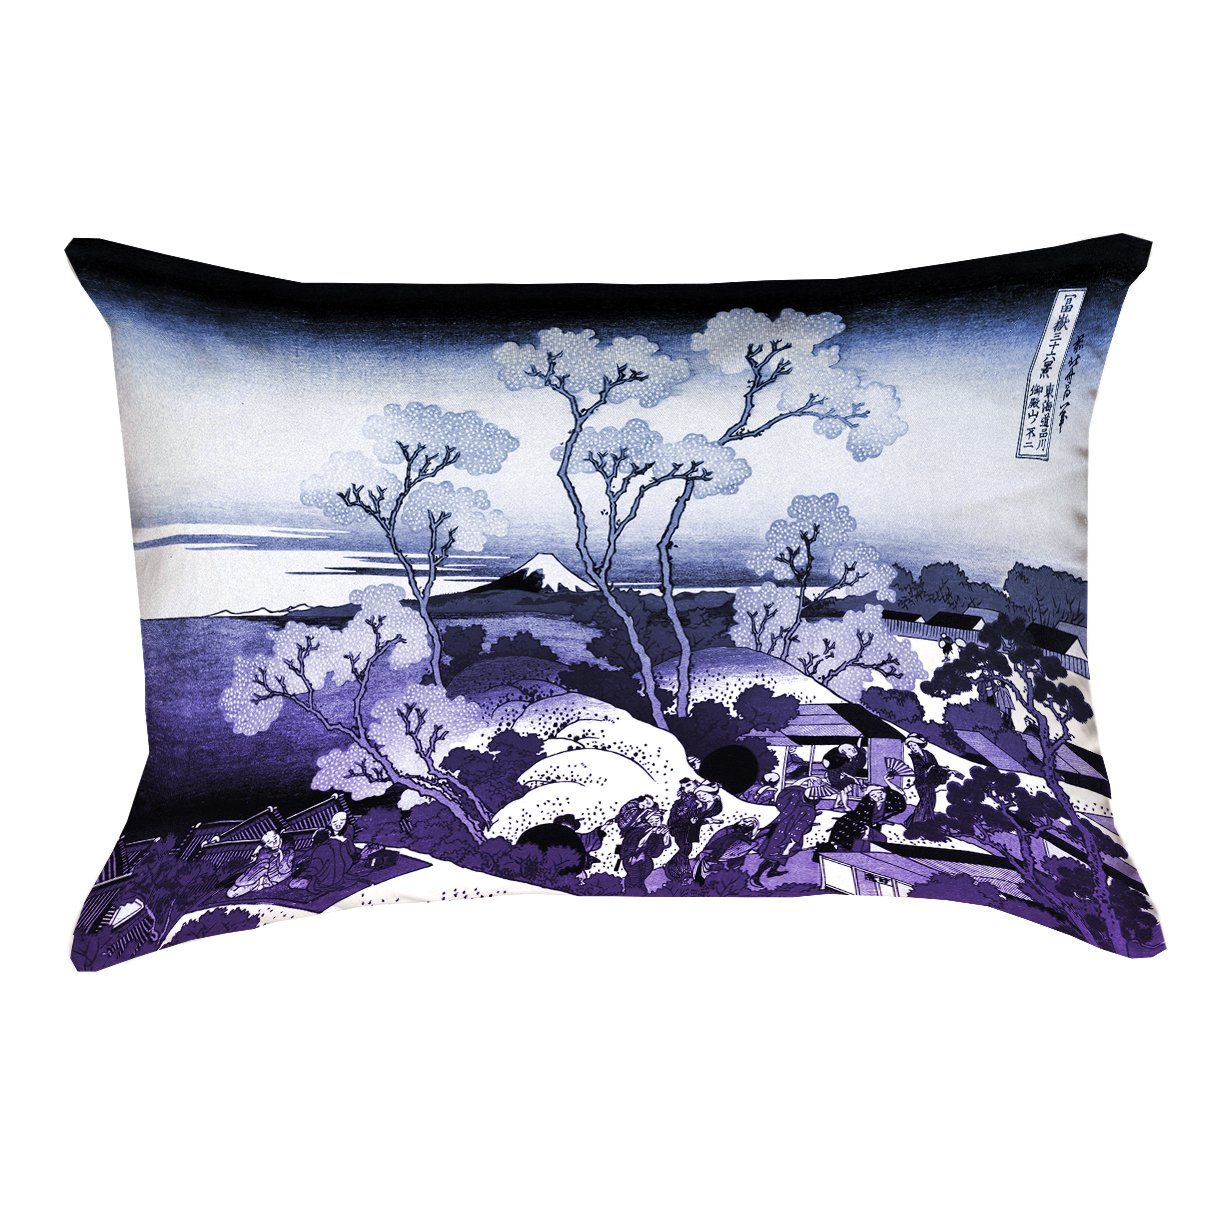 ArtVerse Katsushika Hokusai Mt. Fuji & Cherry Blossoms Blue and Purple Pillow 14' x 20'